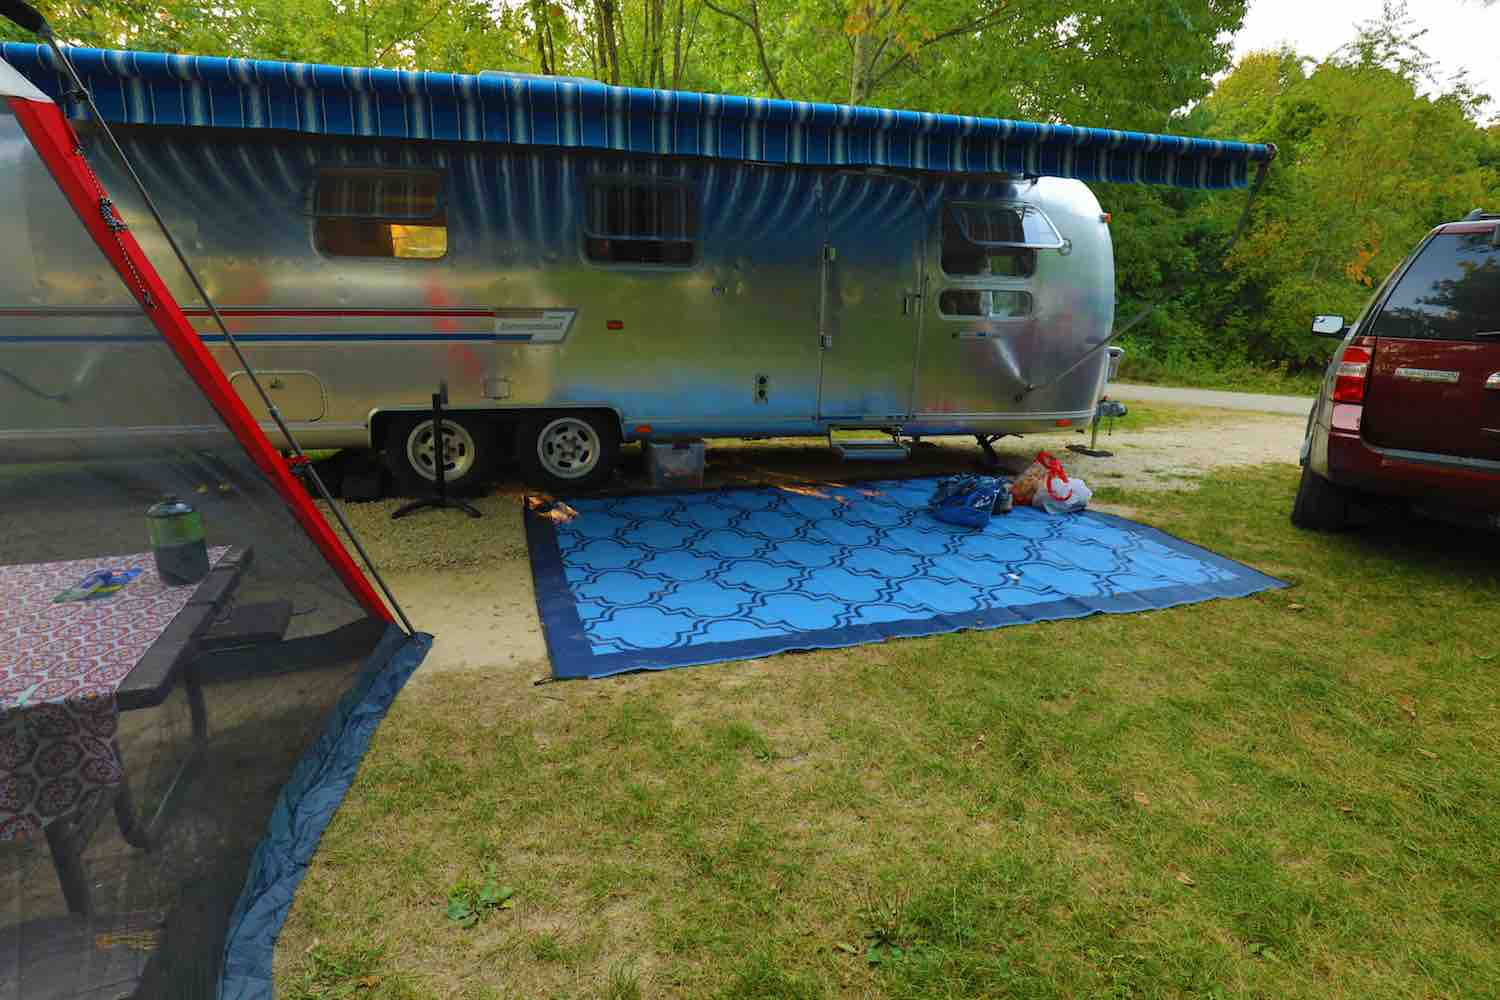 We are ready to camp in our Airstream RV Trailer.